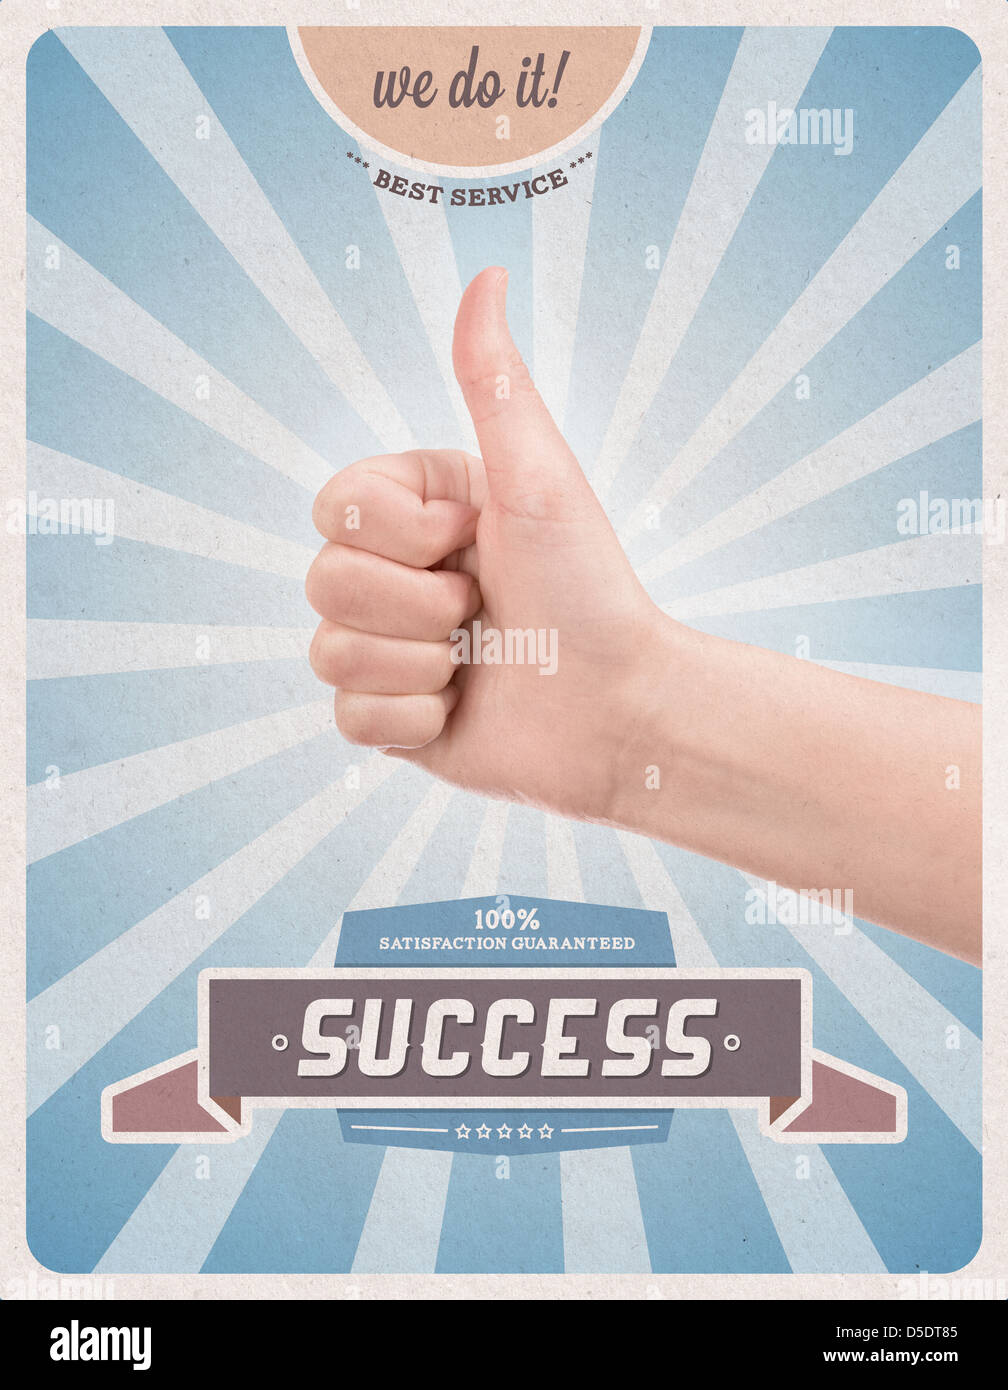 Retro or vintage advertising poster with hand giving a thumbs up gesture  promising of best service and 100% success